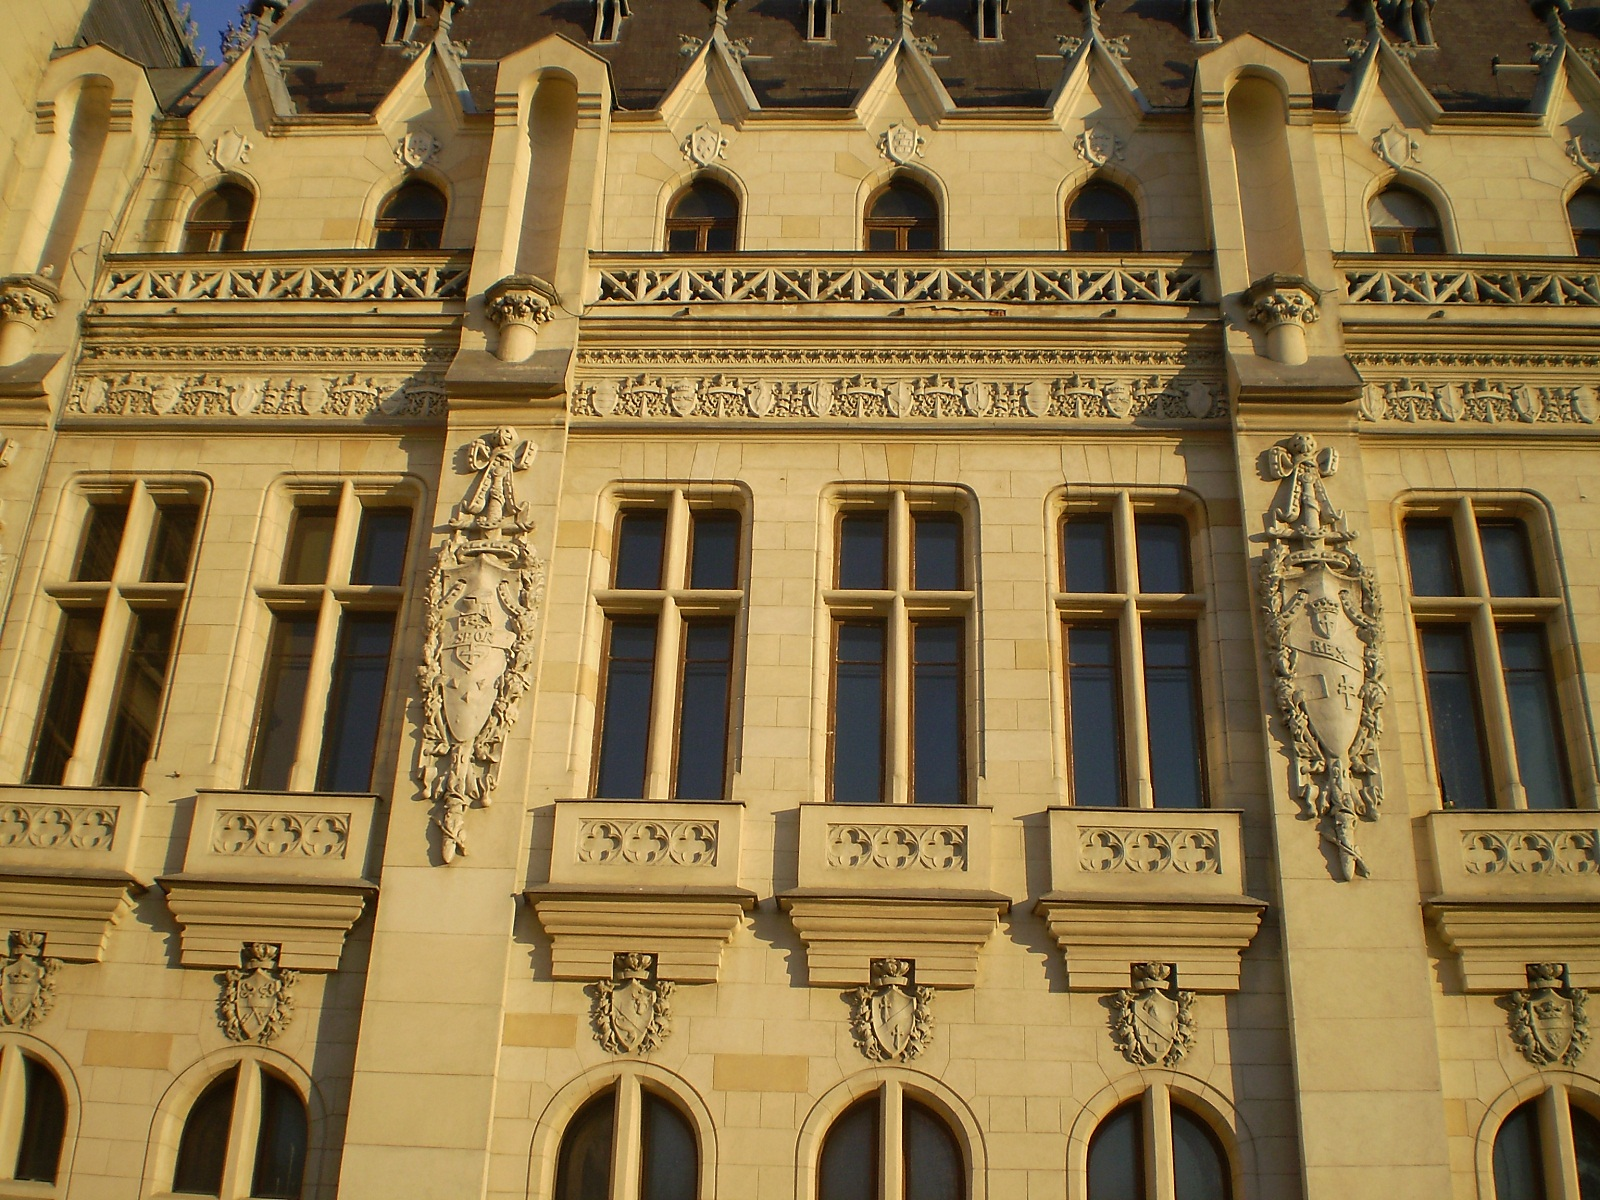 Iasi architecture, Romania, Palace of Culture facade detail